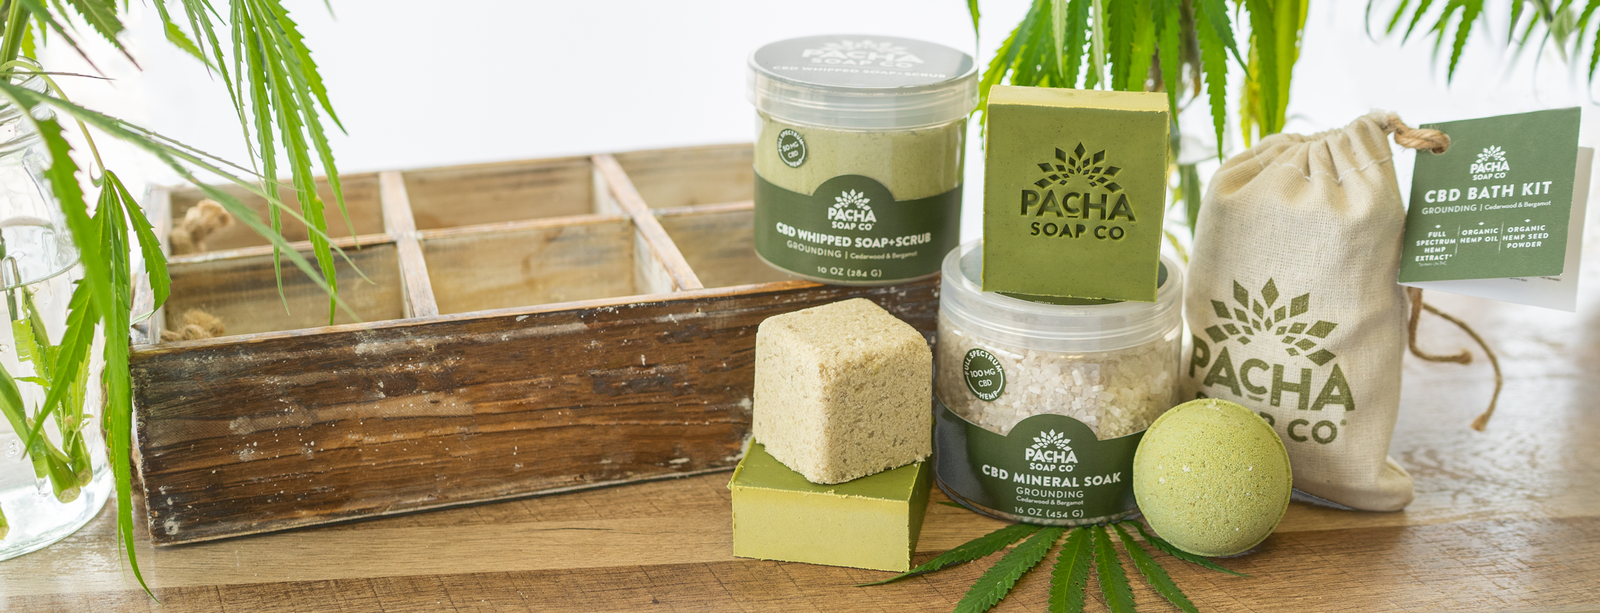 Pacha Soap Co  - Natural Bath Products that change lives